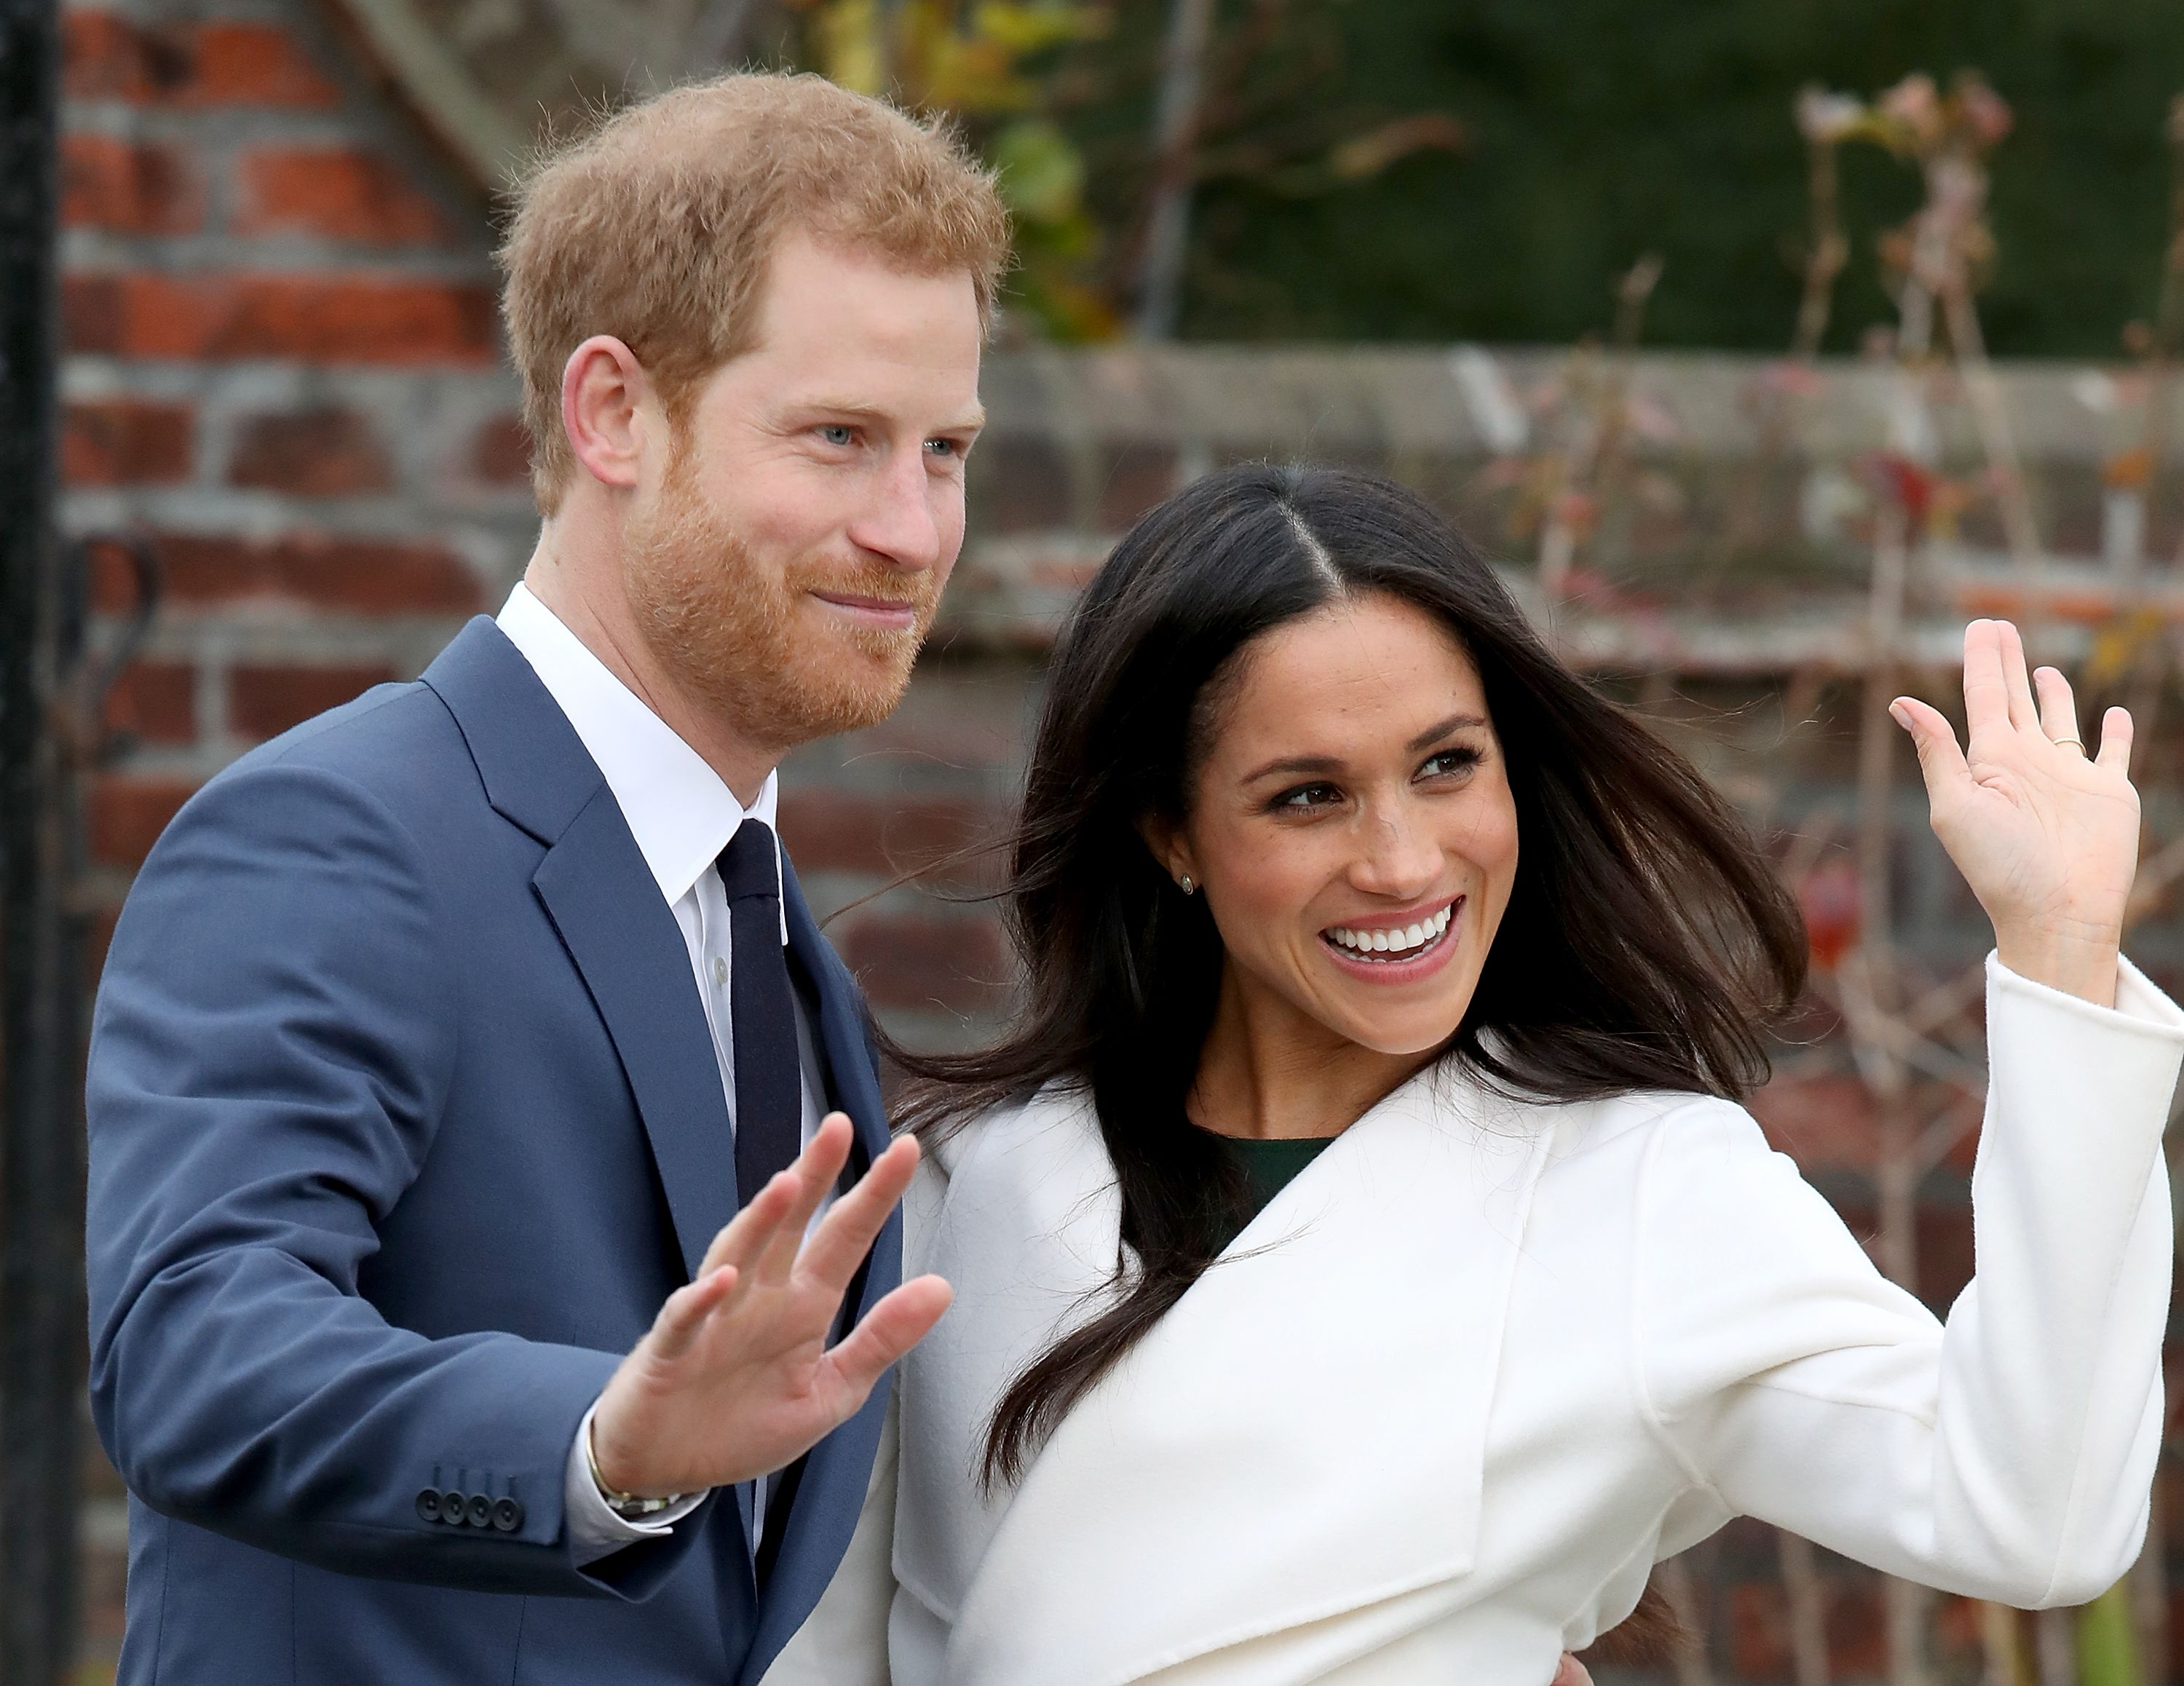 Prince Harry and Meghan Markle during an official photocall to announce their engagement at The Sunken Gardens at Kensington Palace on November 27, 2017 | Photo: Getty Images